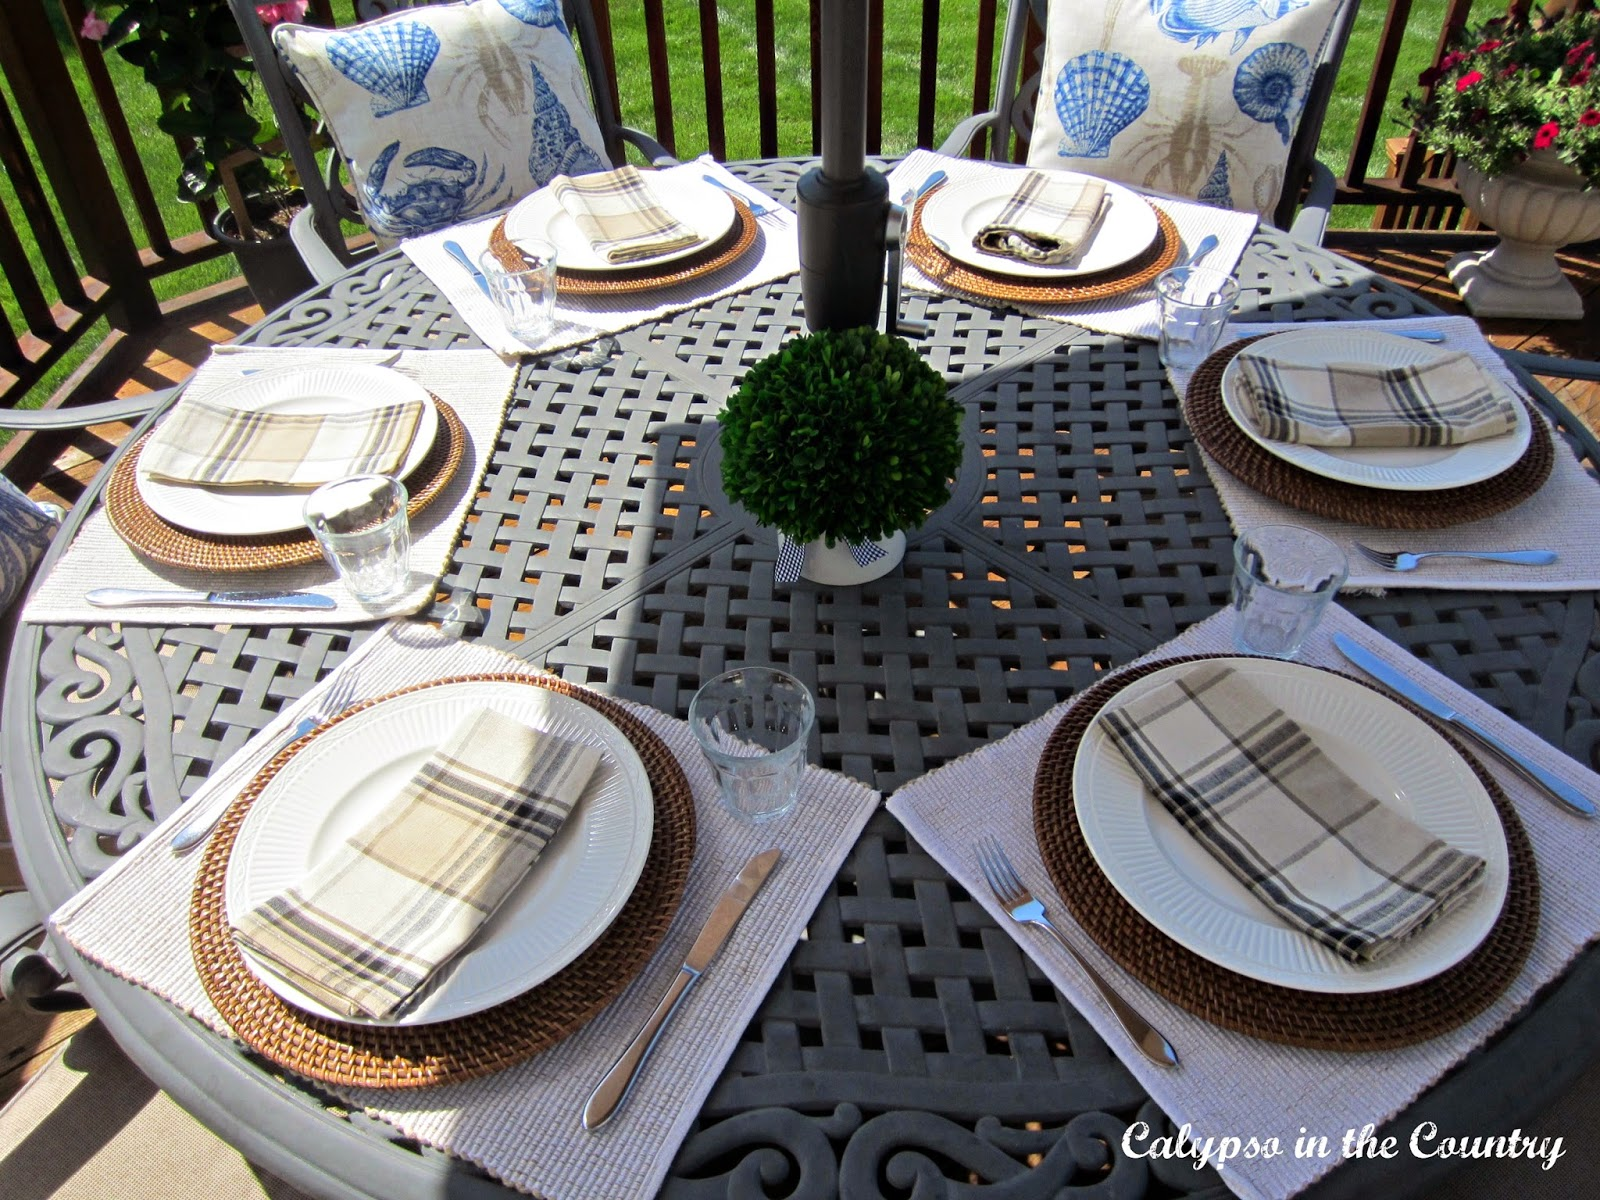 Father's Day Table Setting on the deck